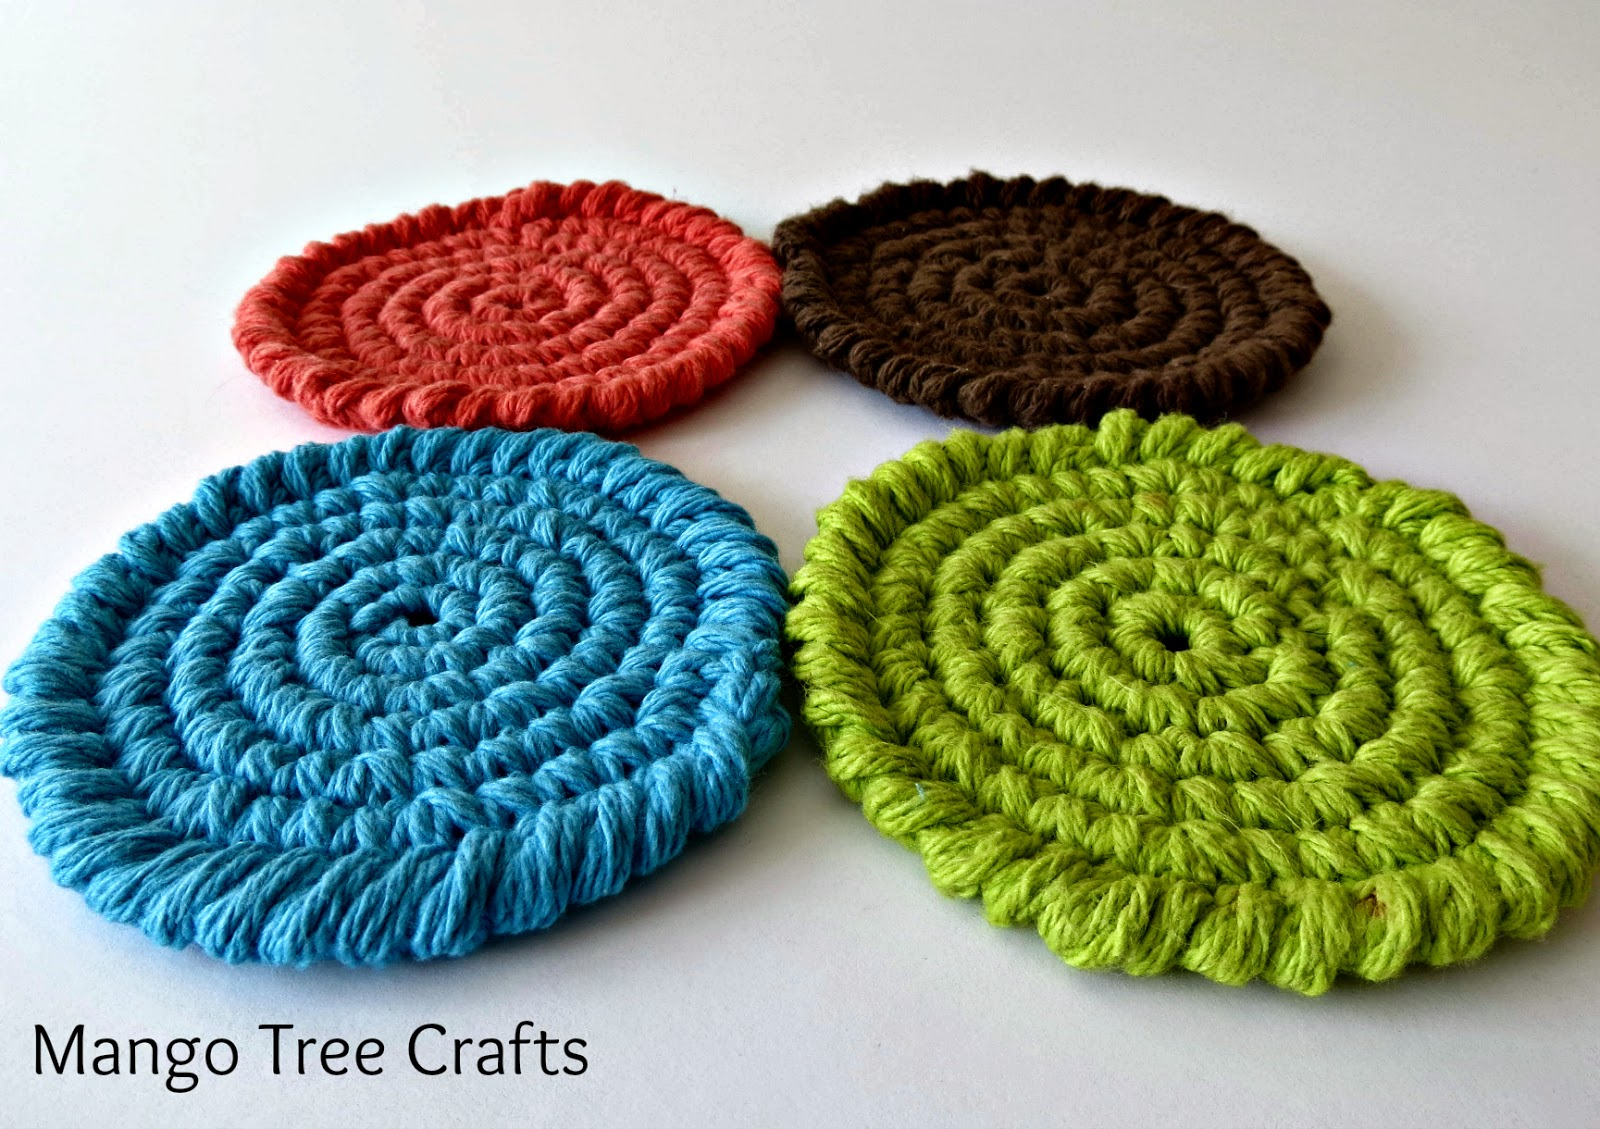 Crochet Patterns Coasters : Crochet Coasters